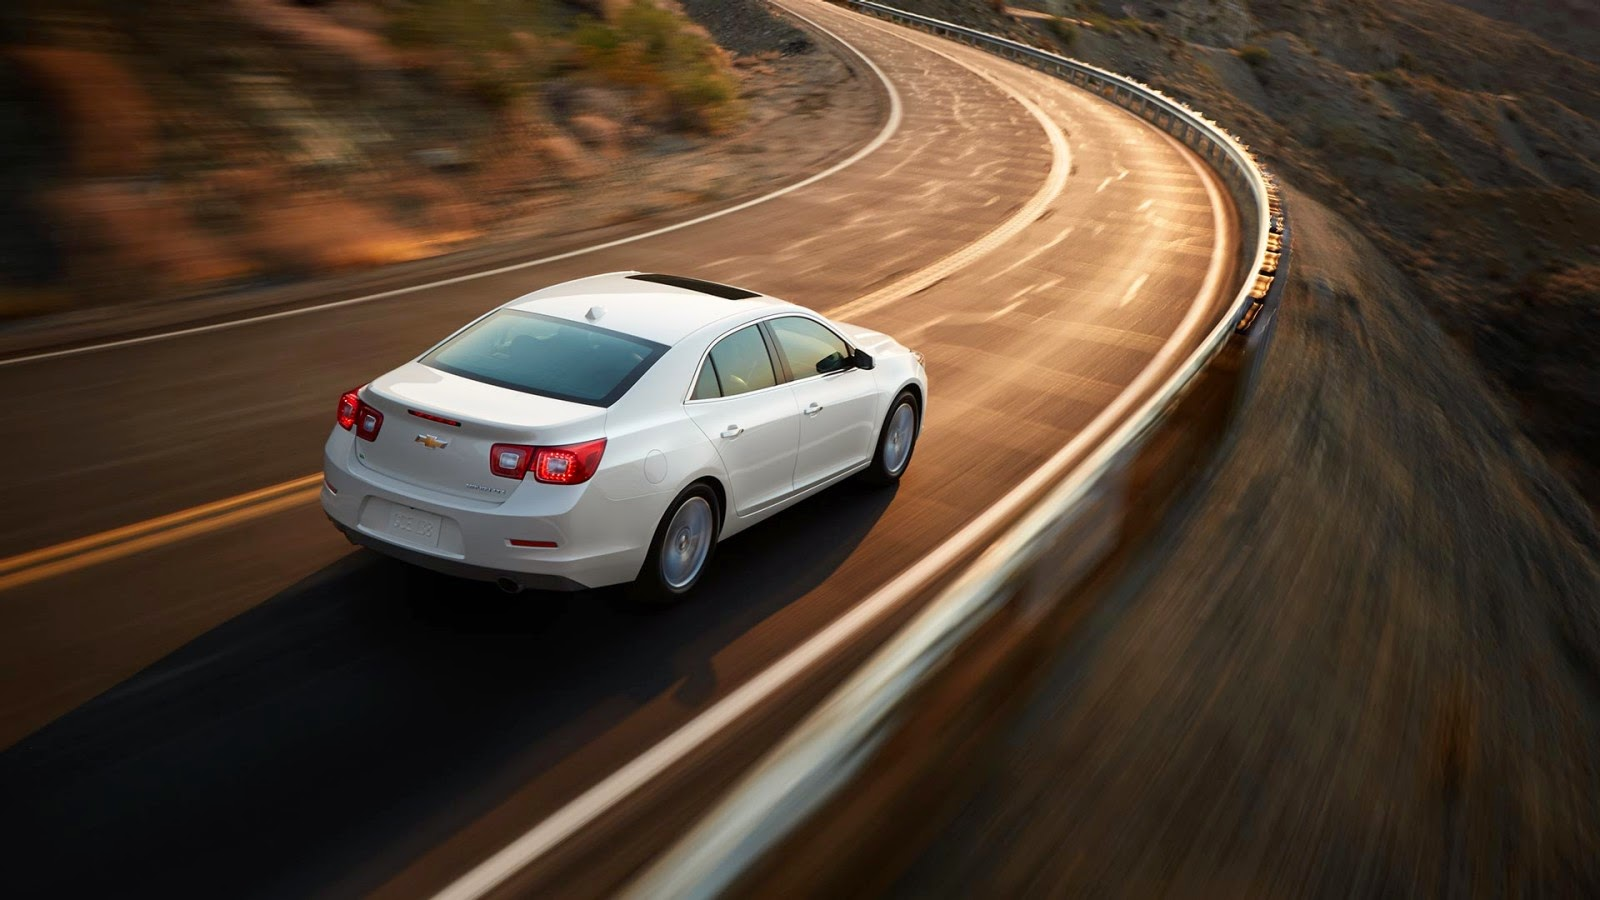 2014 Chevrolet Malibu: IIHS Top Safety Pick+